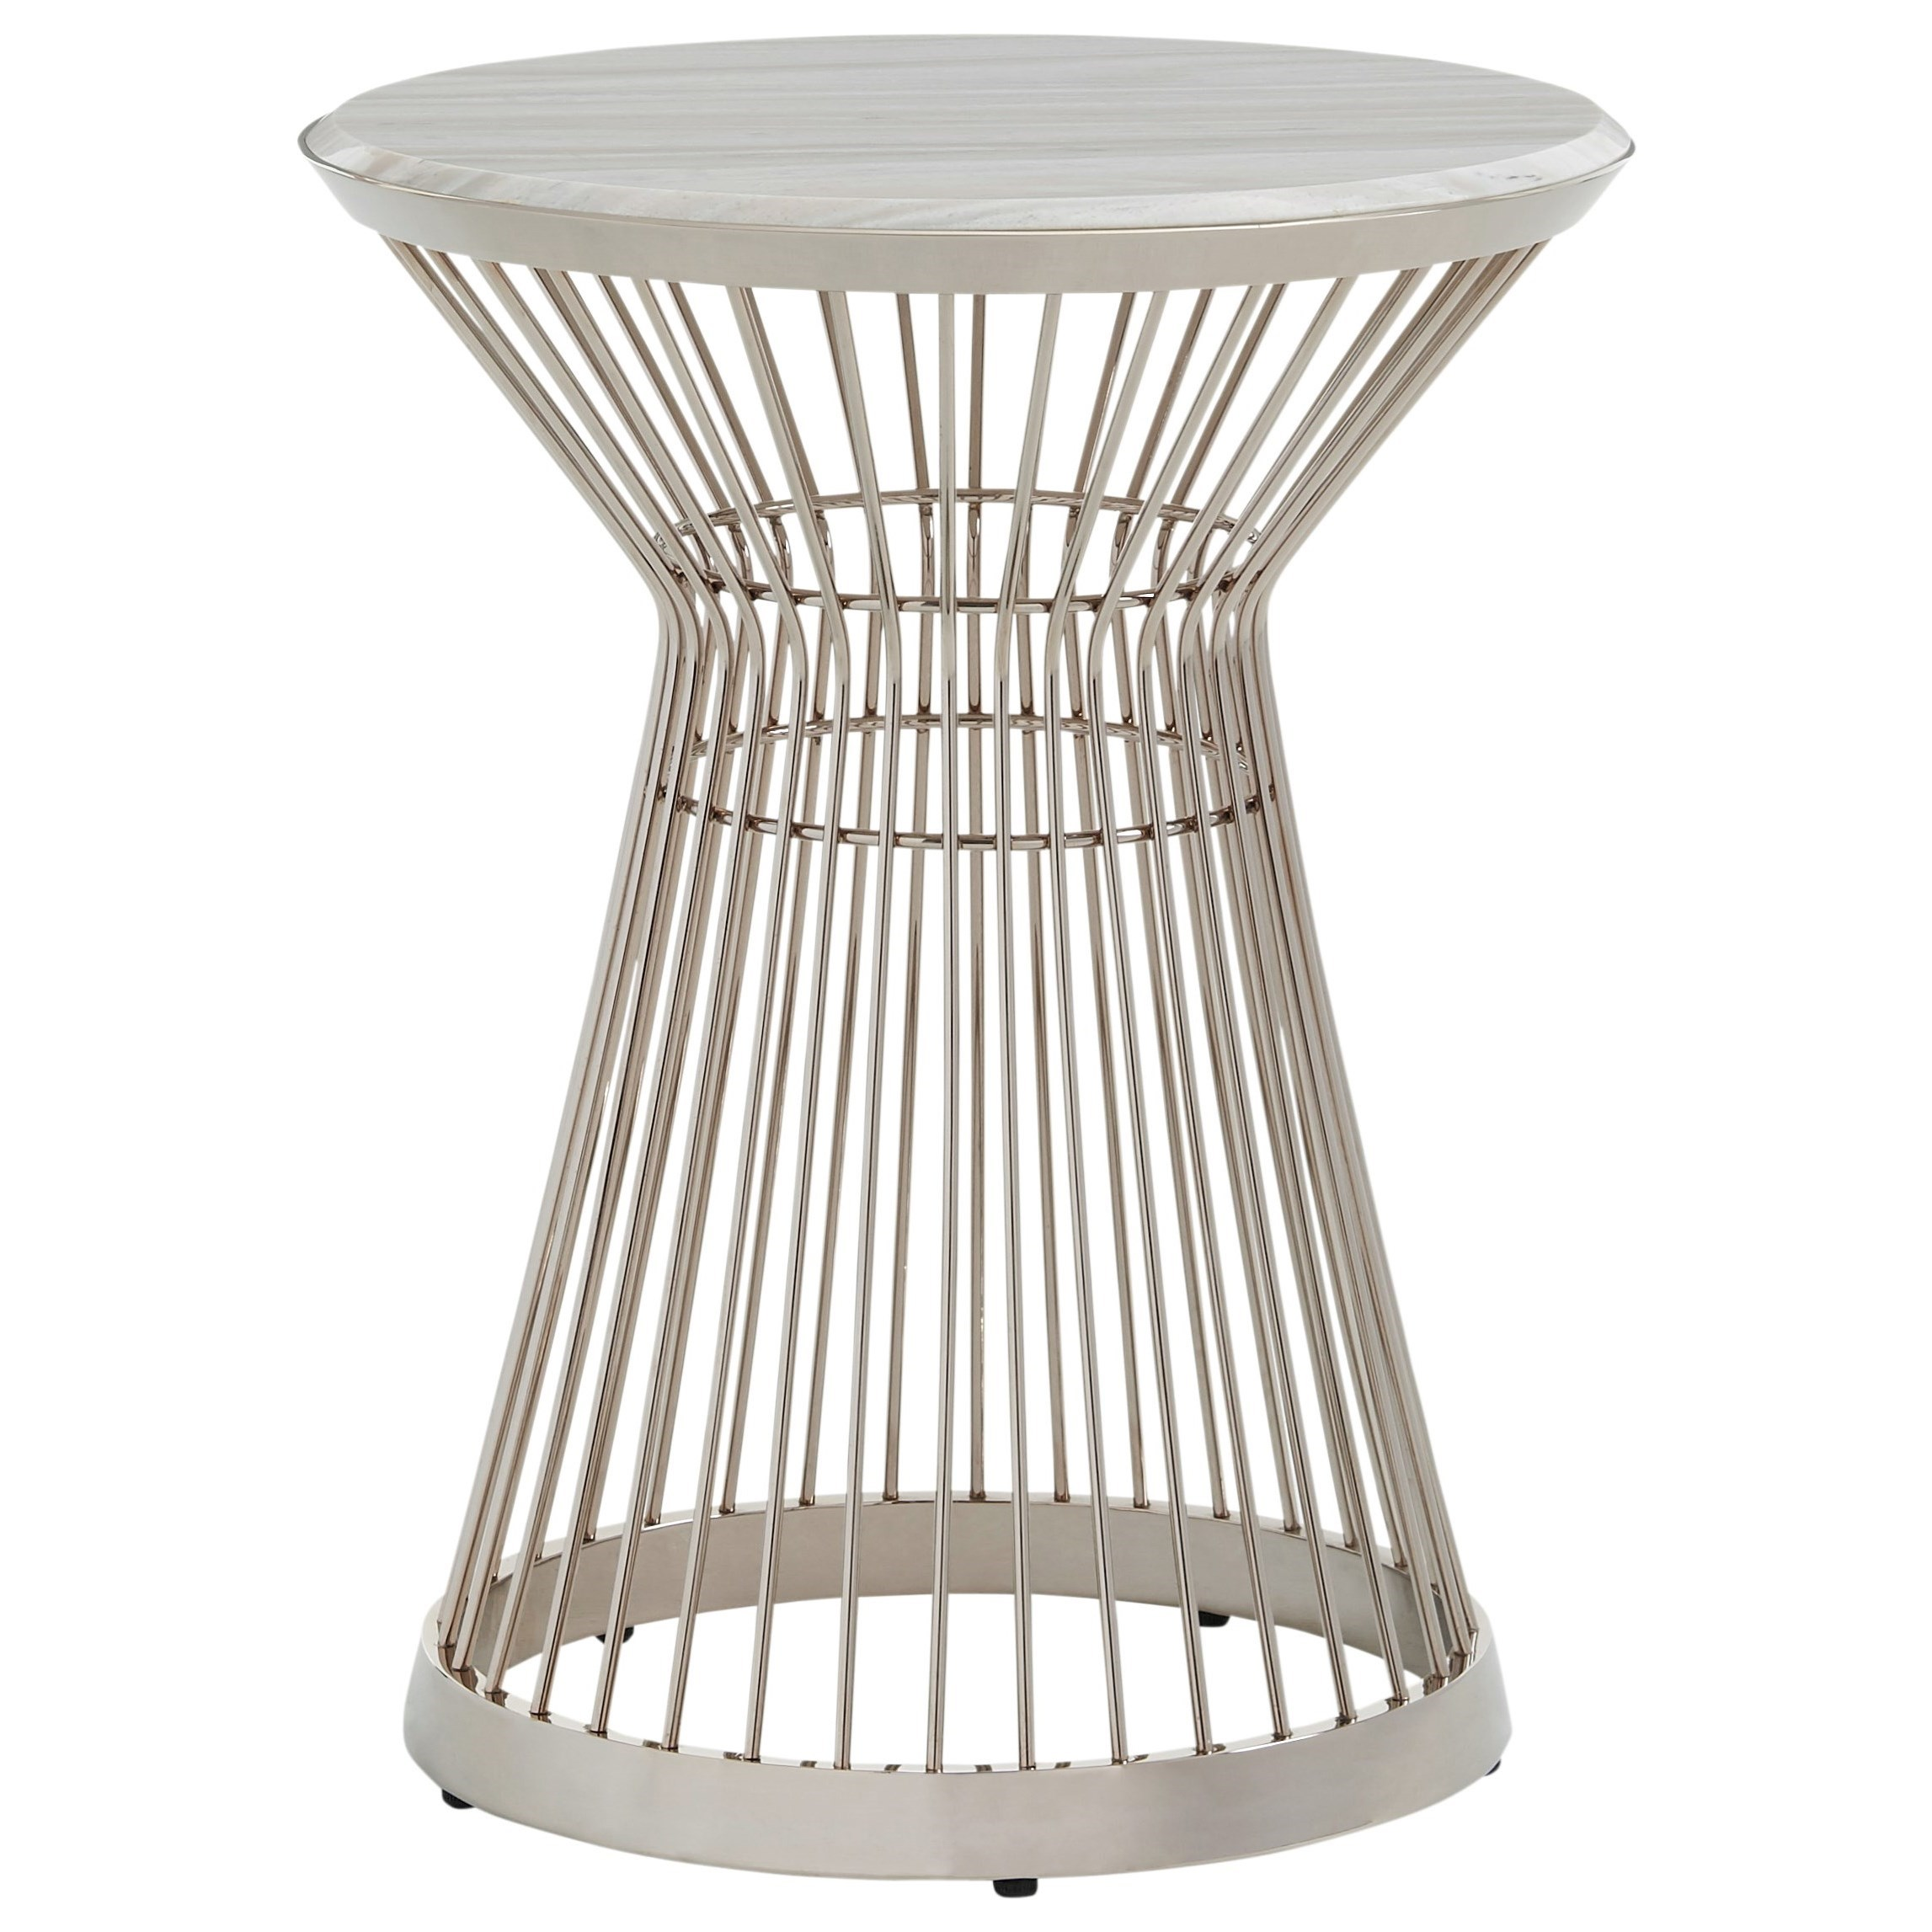 Ariana Martini Stainless Accent Table by Lexington at Johnny Janosik